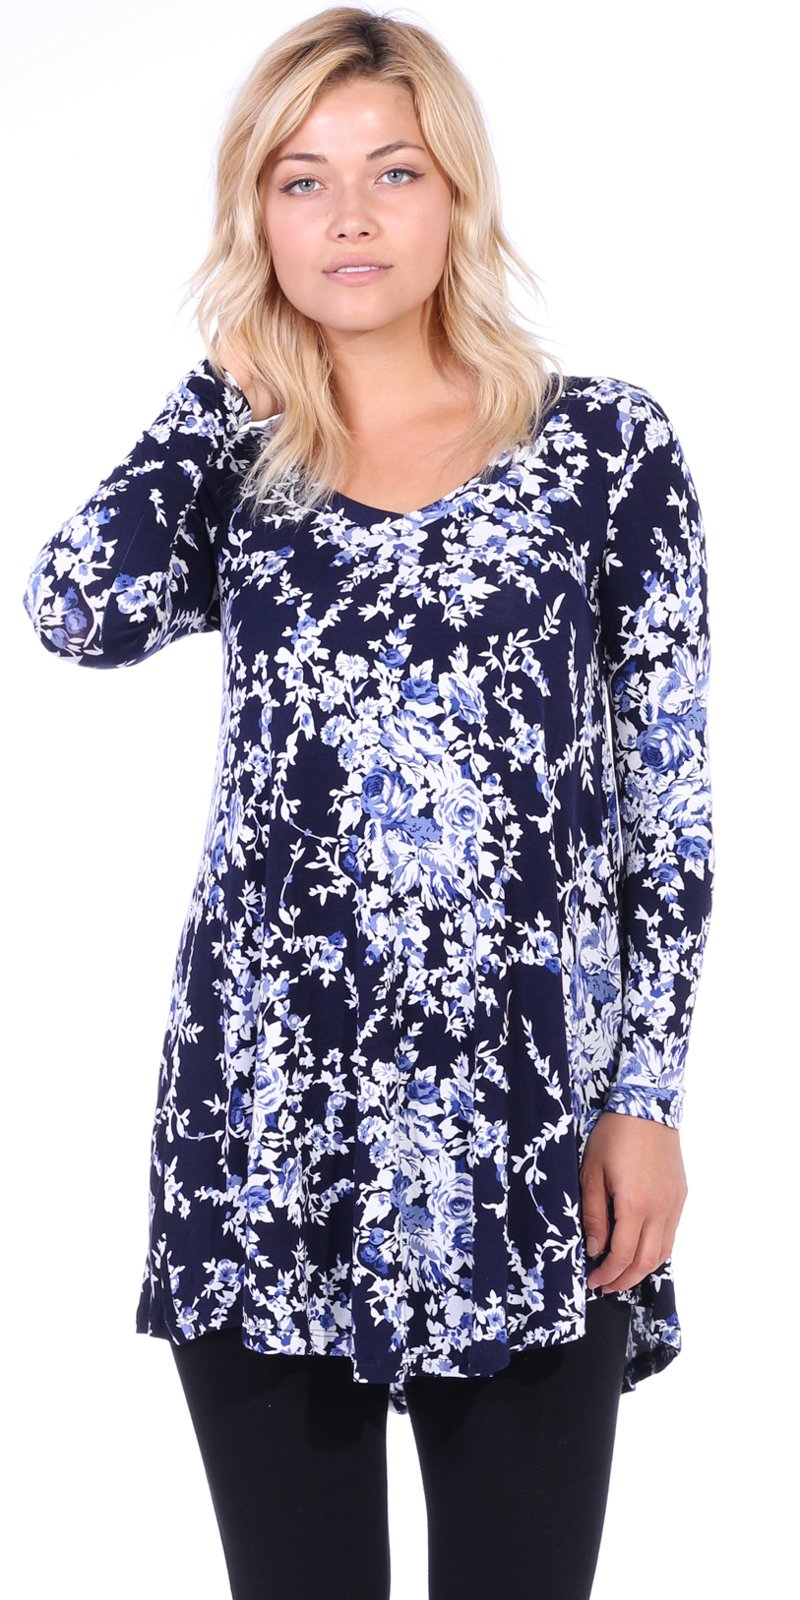 a805cb9dfc7 Galleon - Popana Women s Tunic Tops For Leggings Long Sleeve Shirt Plus  Size Made In USA 2X ST61